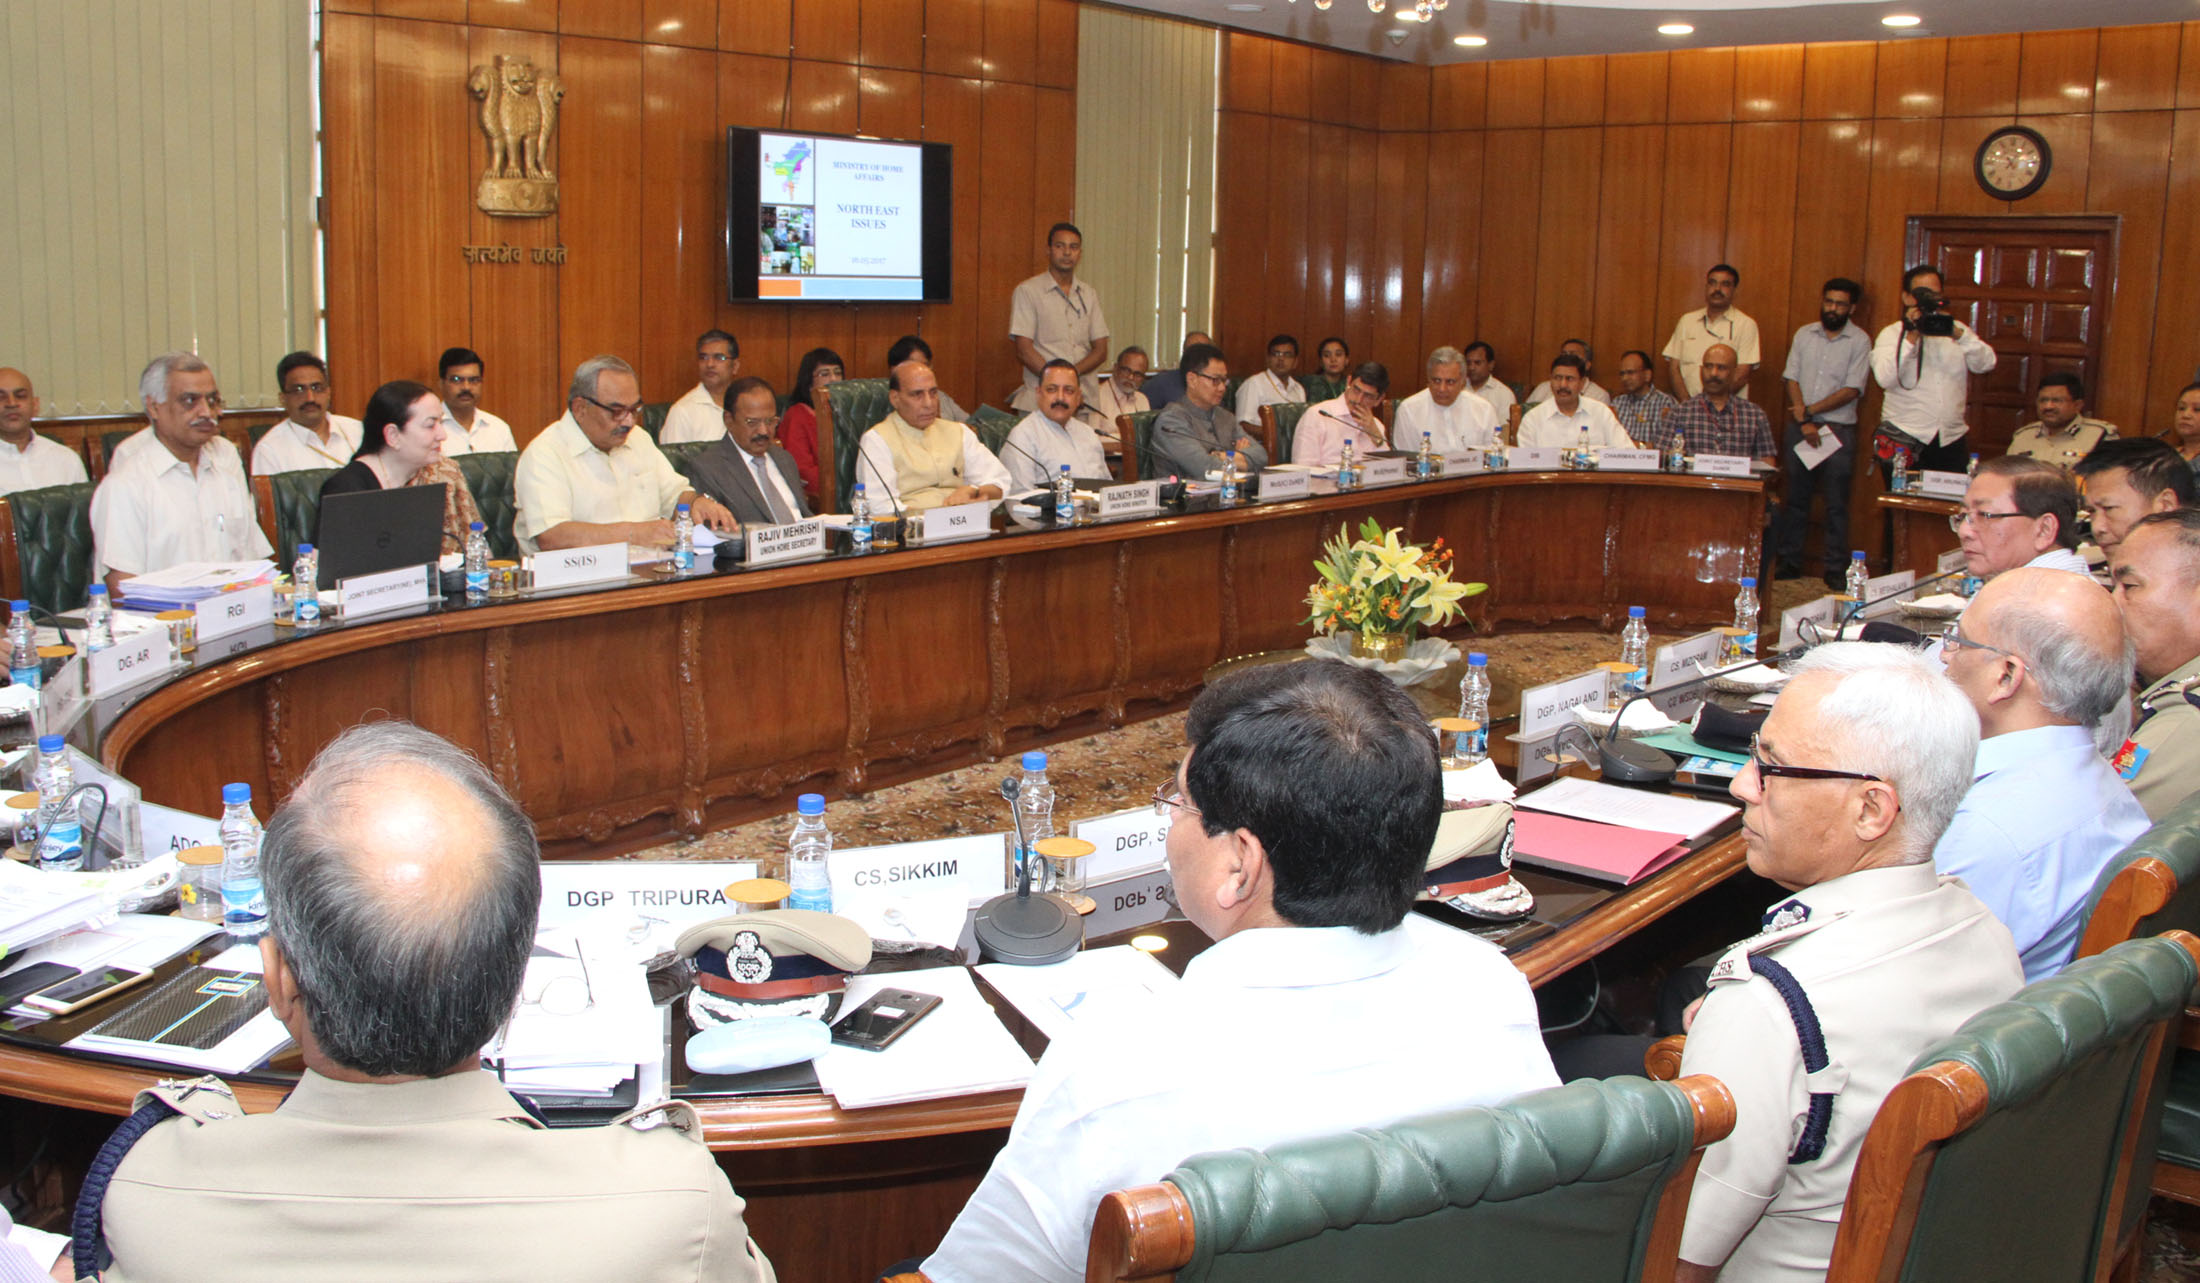 The Union Home Minister, Shri Rajnath Singh chairing the meeting on issues related to North East, in New Delhi on May 16, 2017.  The Minister of State for Development of North Eastern Region (I/C), Prime Minister's Office, Personnel, Public Grievances & Pensions, Atomic Energy and Space, Dr. Jitendra Singh, the Minister of State for Home Affairs, Shri Kiren Rijiju and senior officers from the Central Government and North eastern states are also seen.